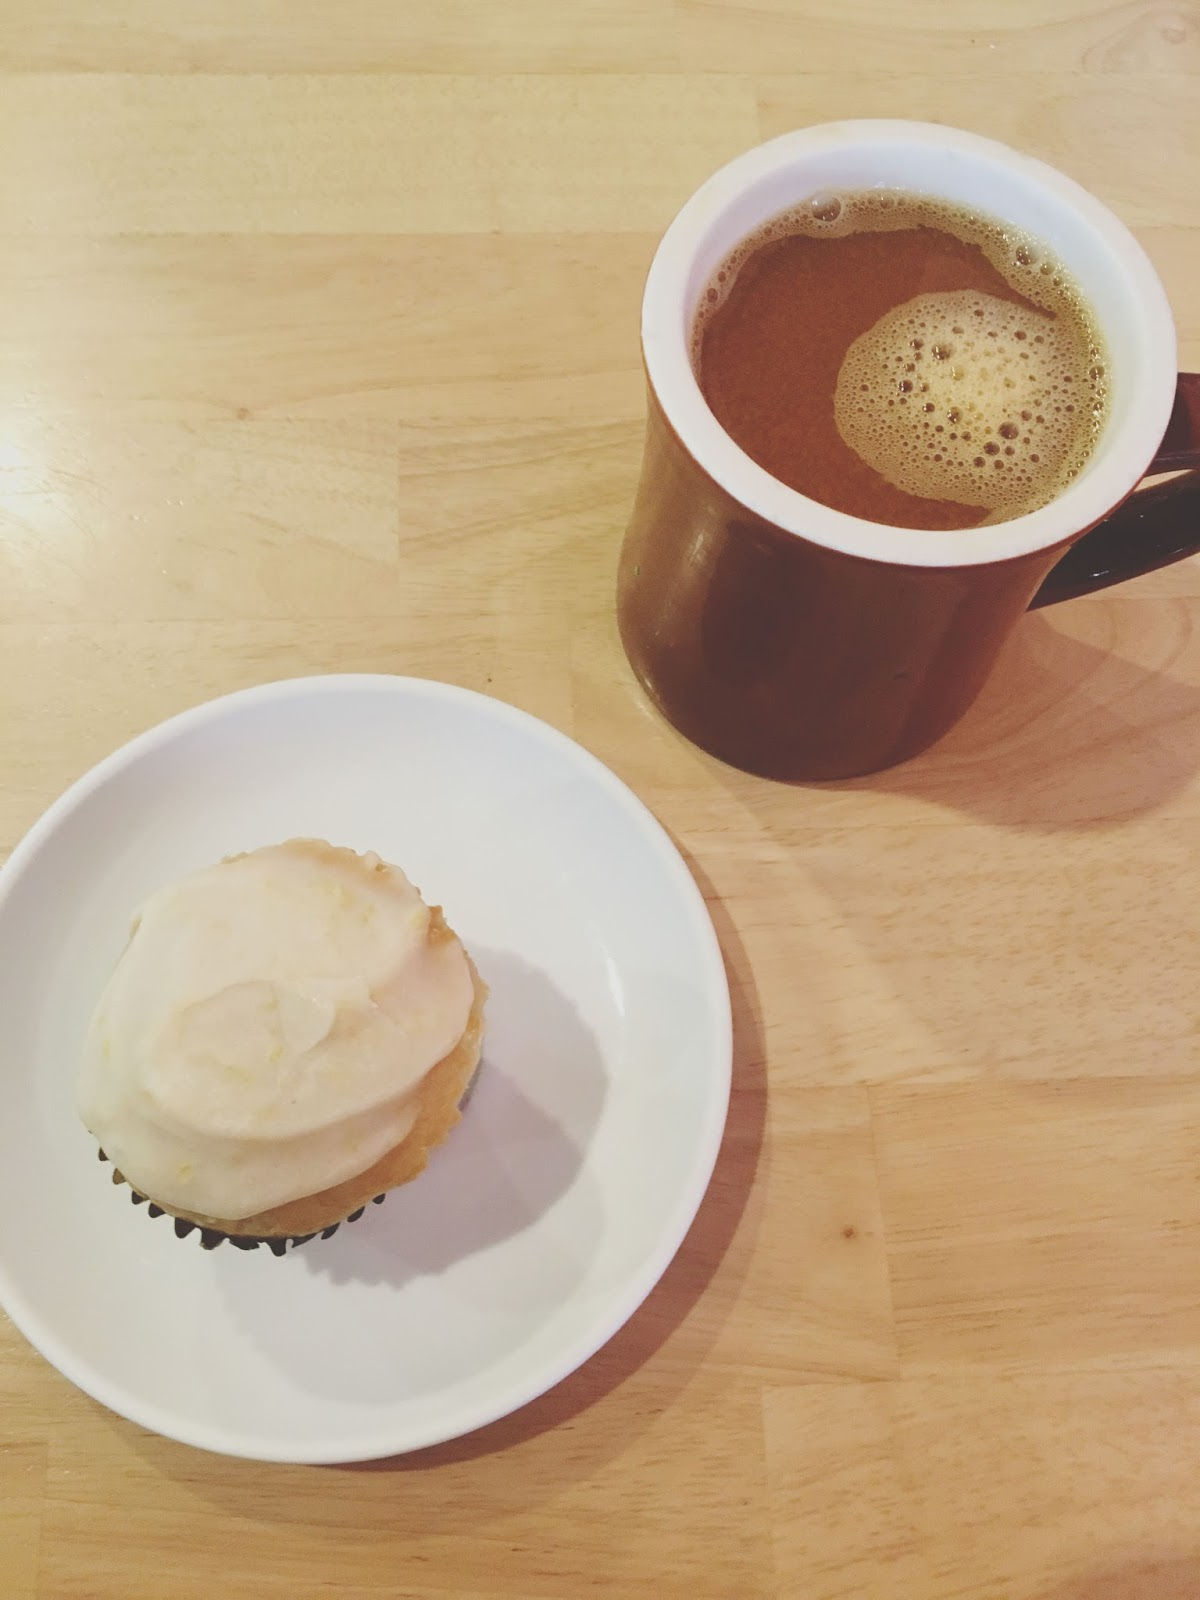 vegan lemon cupcake at 2Tarts - a bakery in New Braunfels, Texas